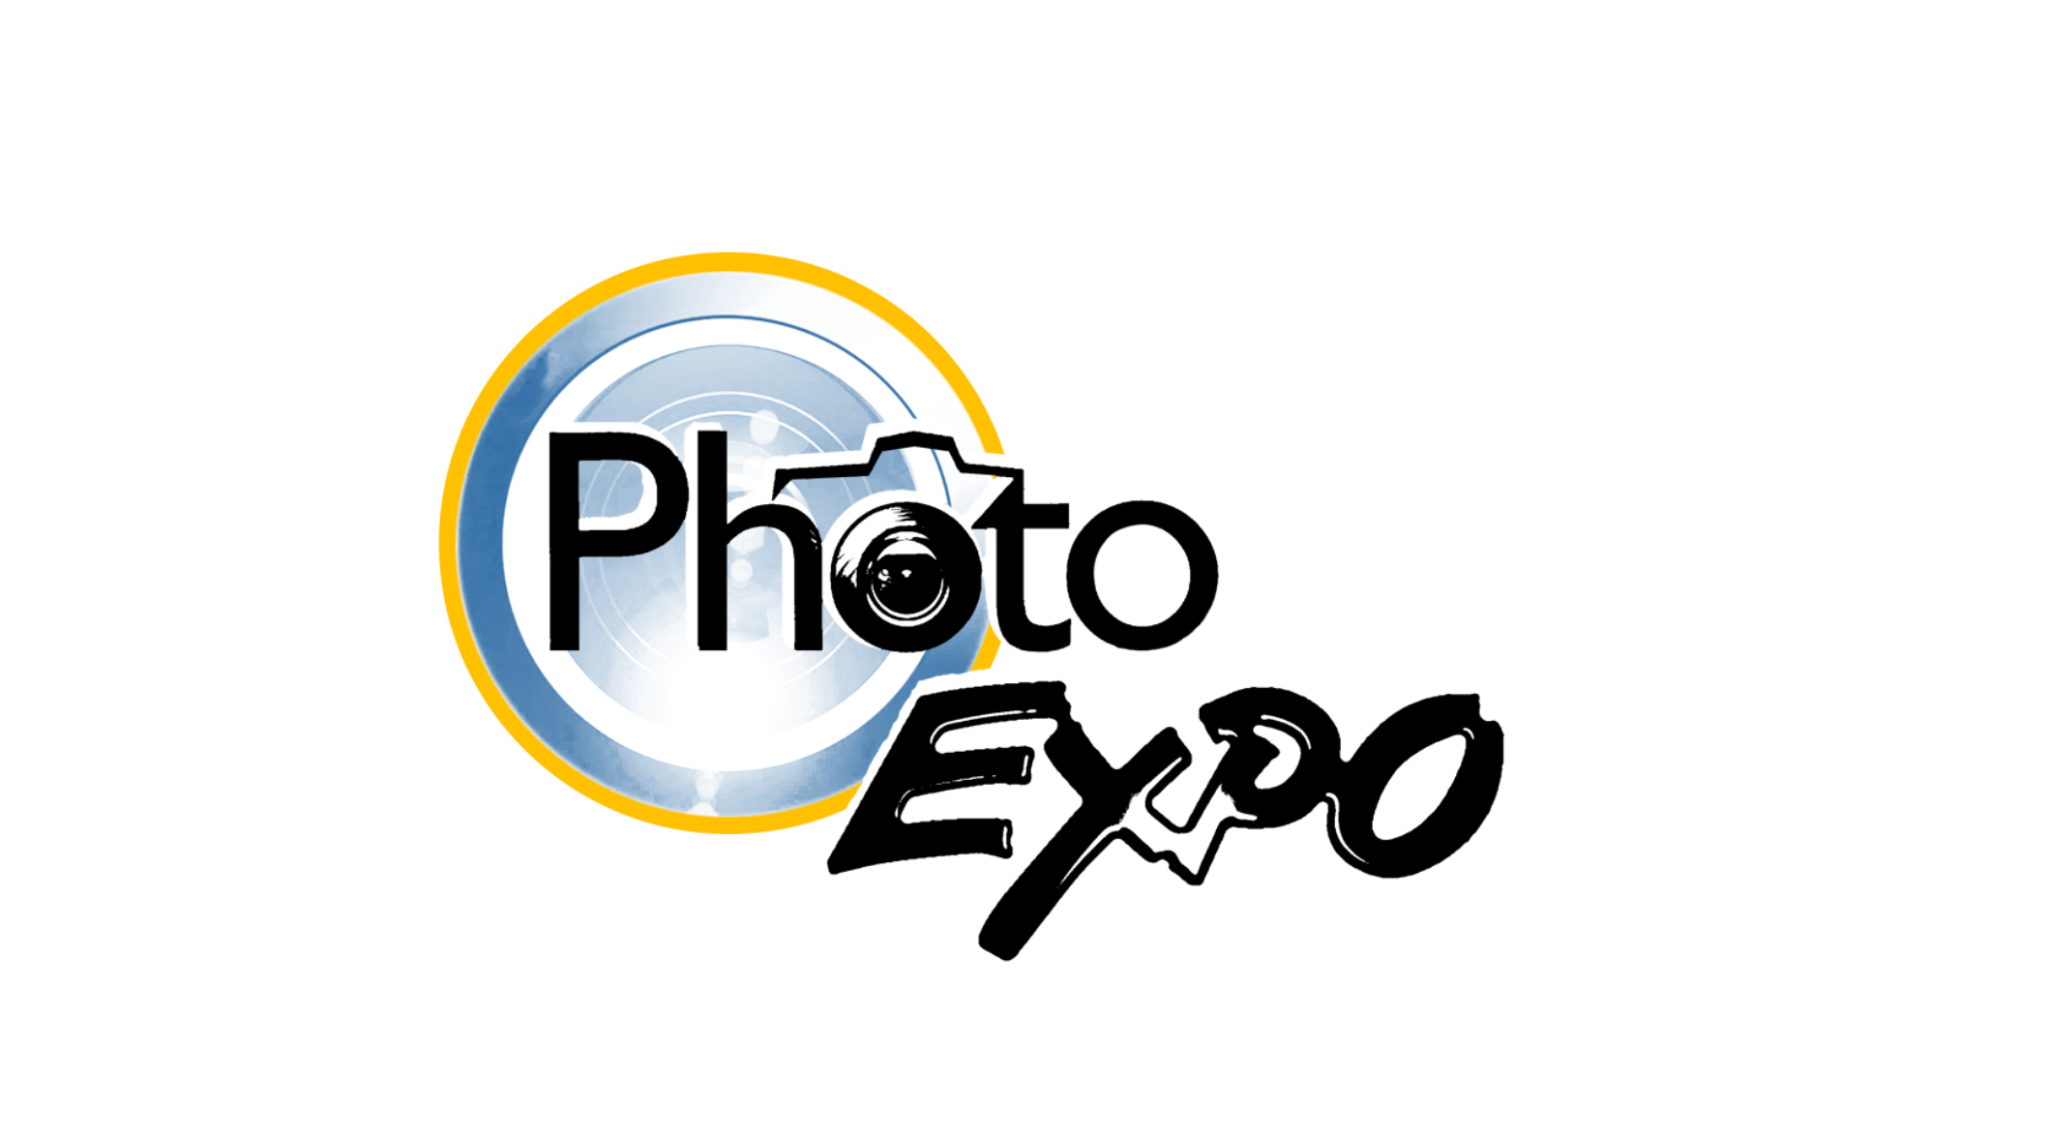 PHOTO EXPO LOGO